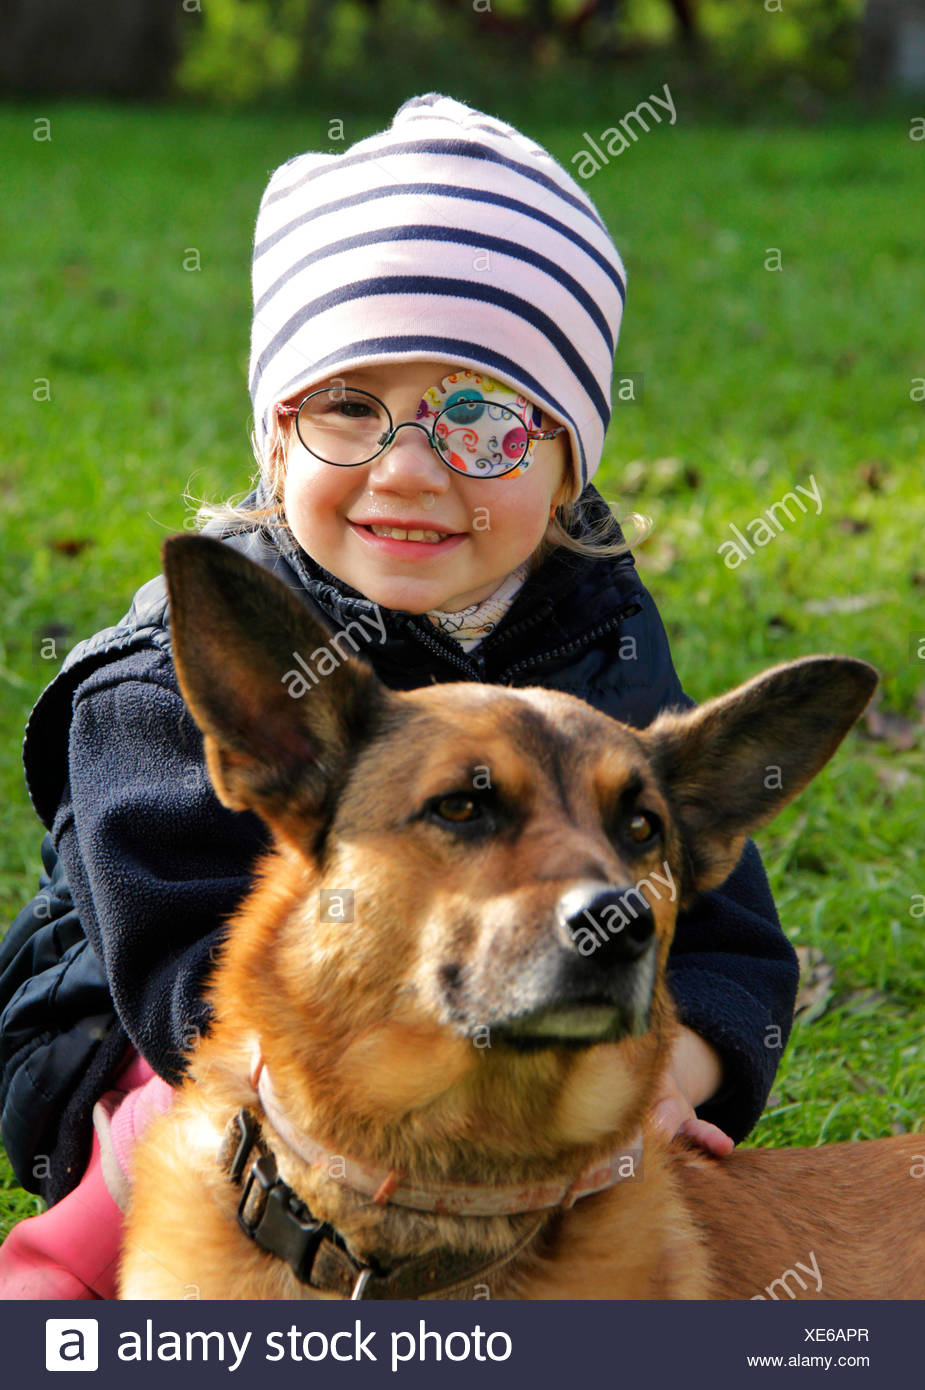 mixed breed dog (Canis lupus f. familiaris), little girl with eye patch stroking a dog, Germany - Stock Image